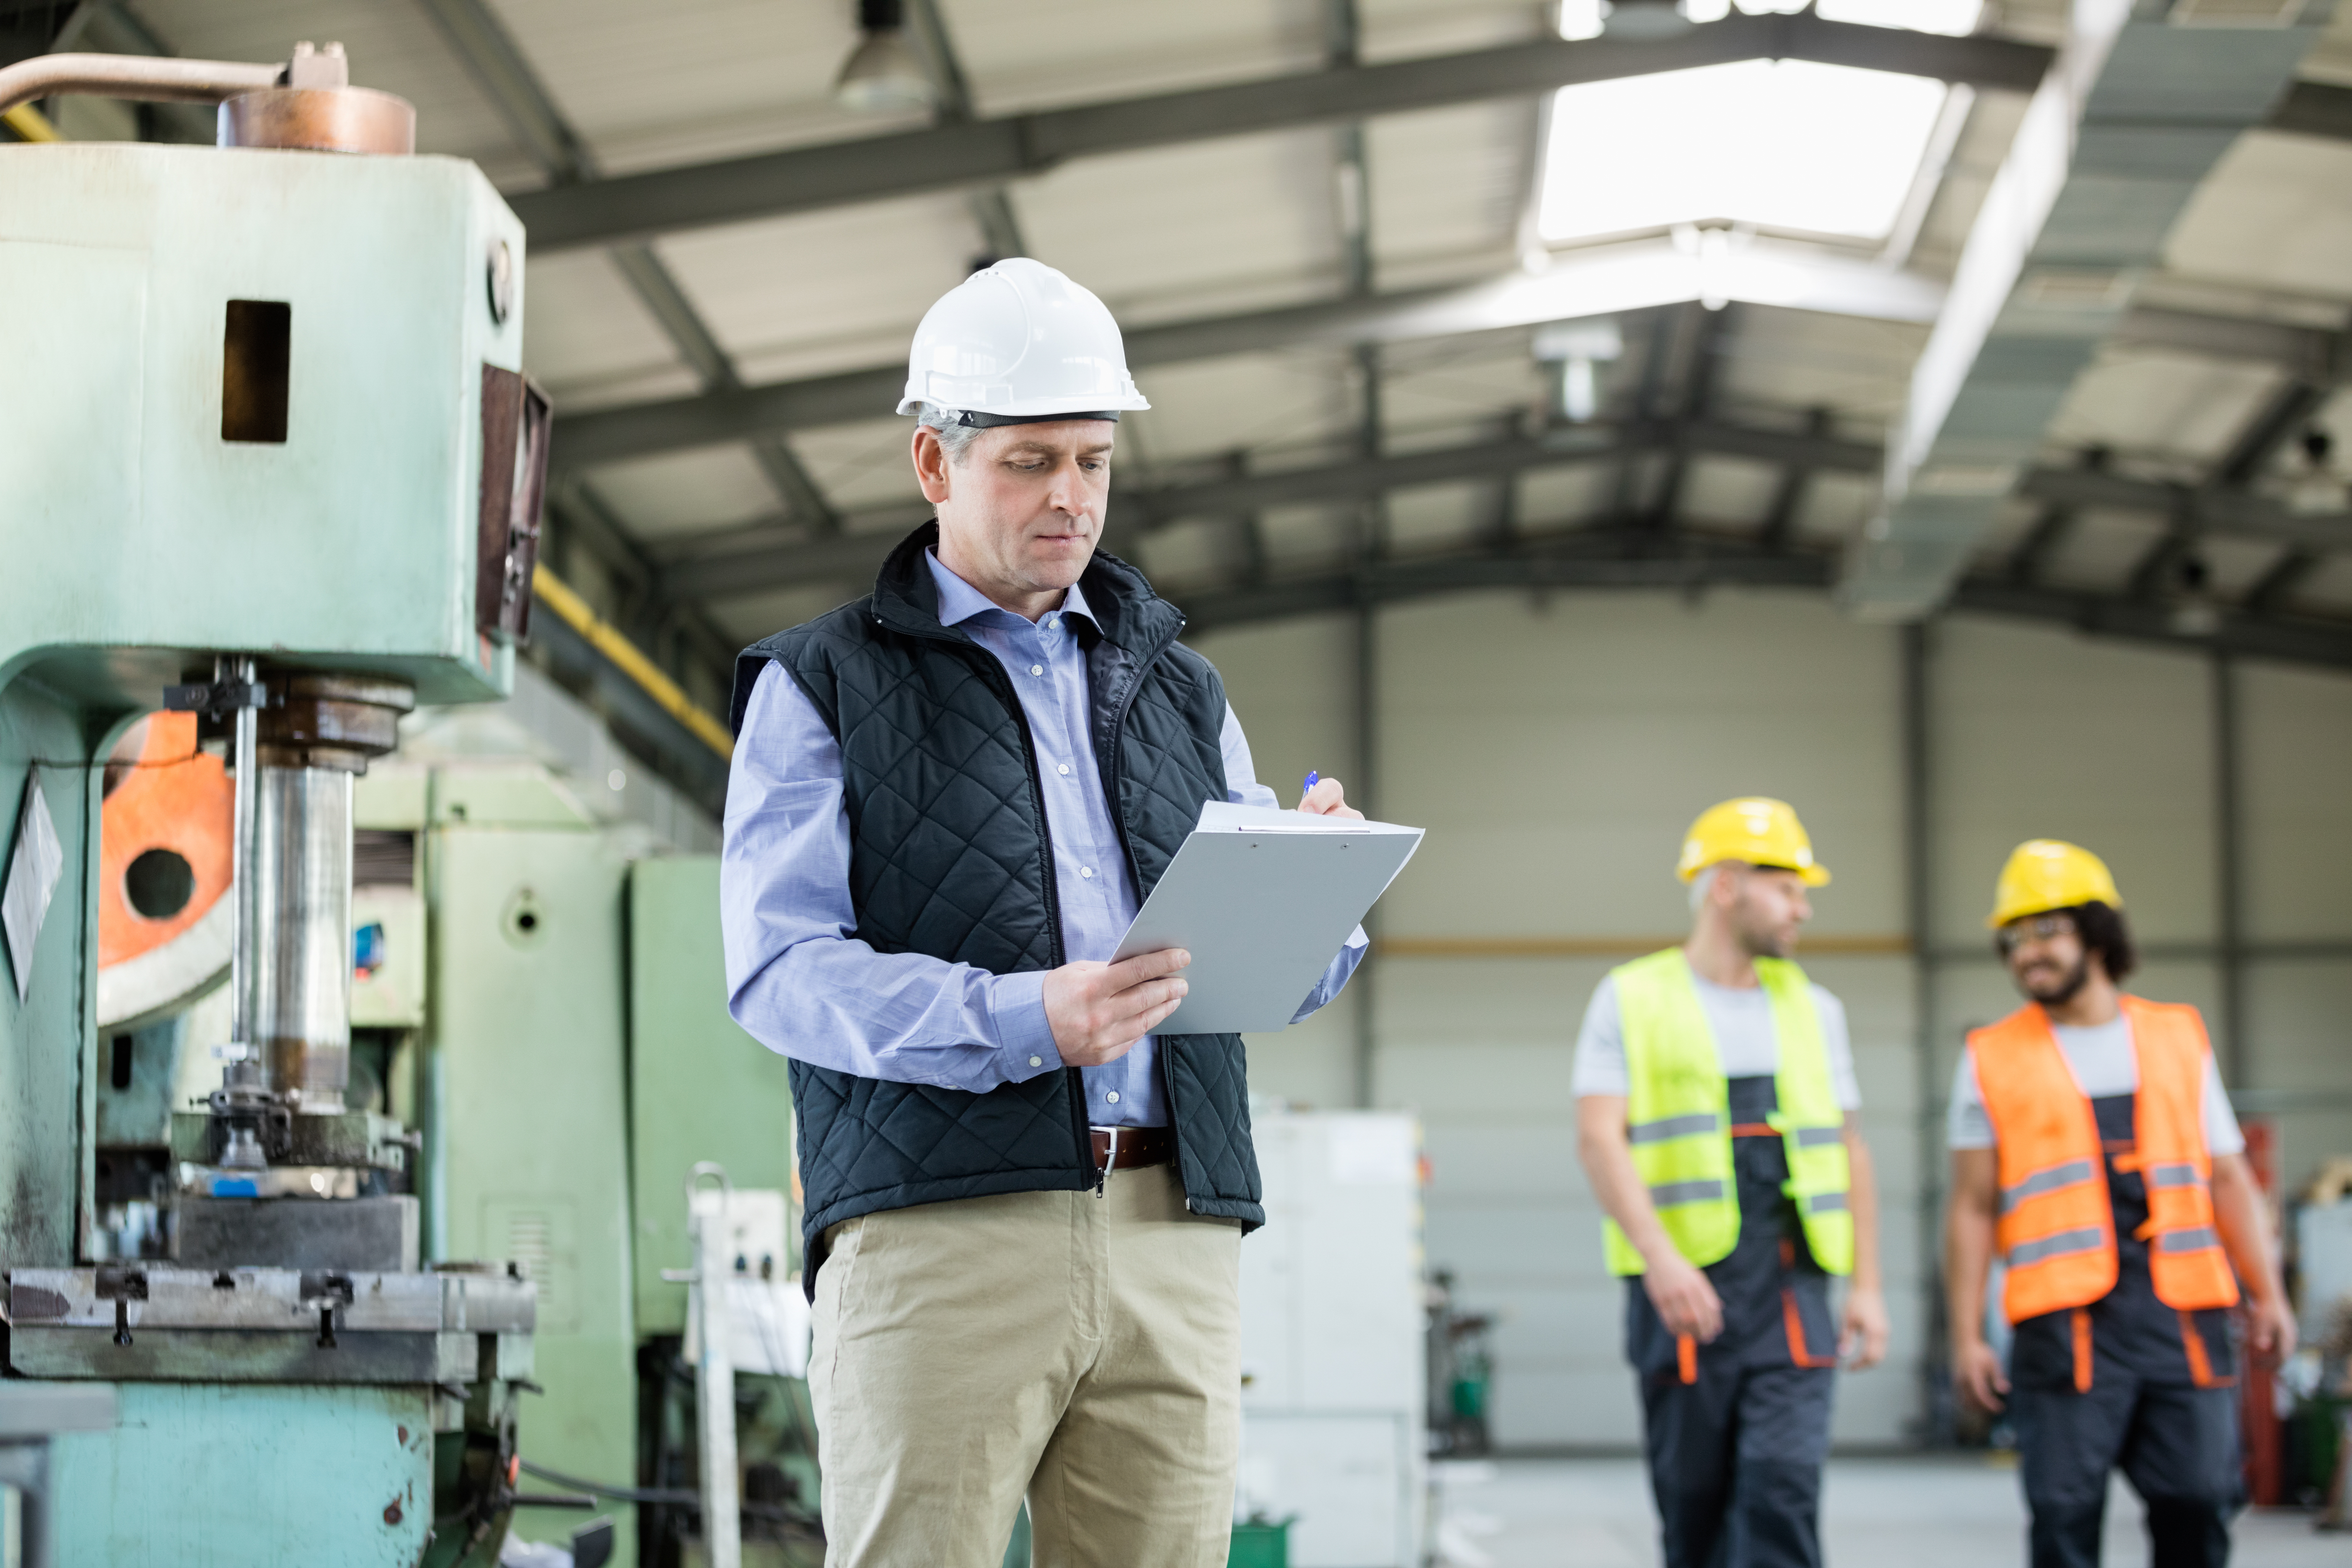 worker in vest and hard hat with clipboard